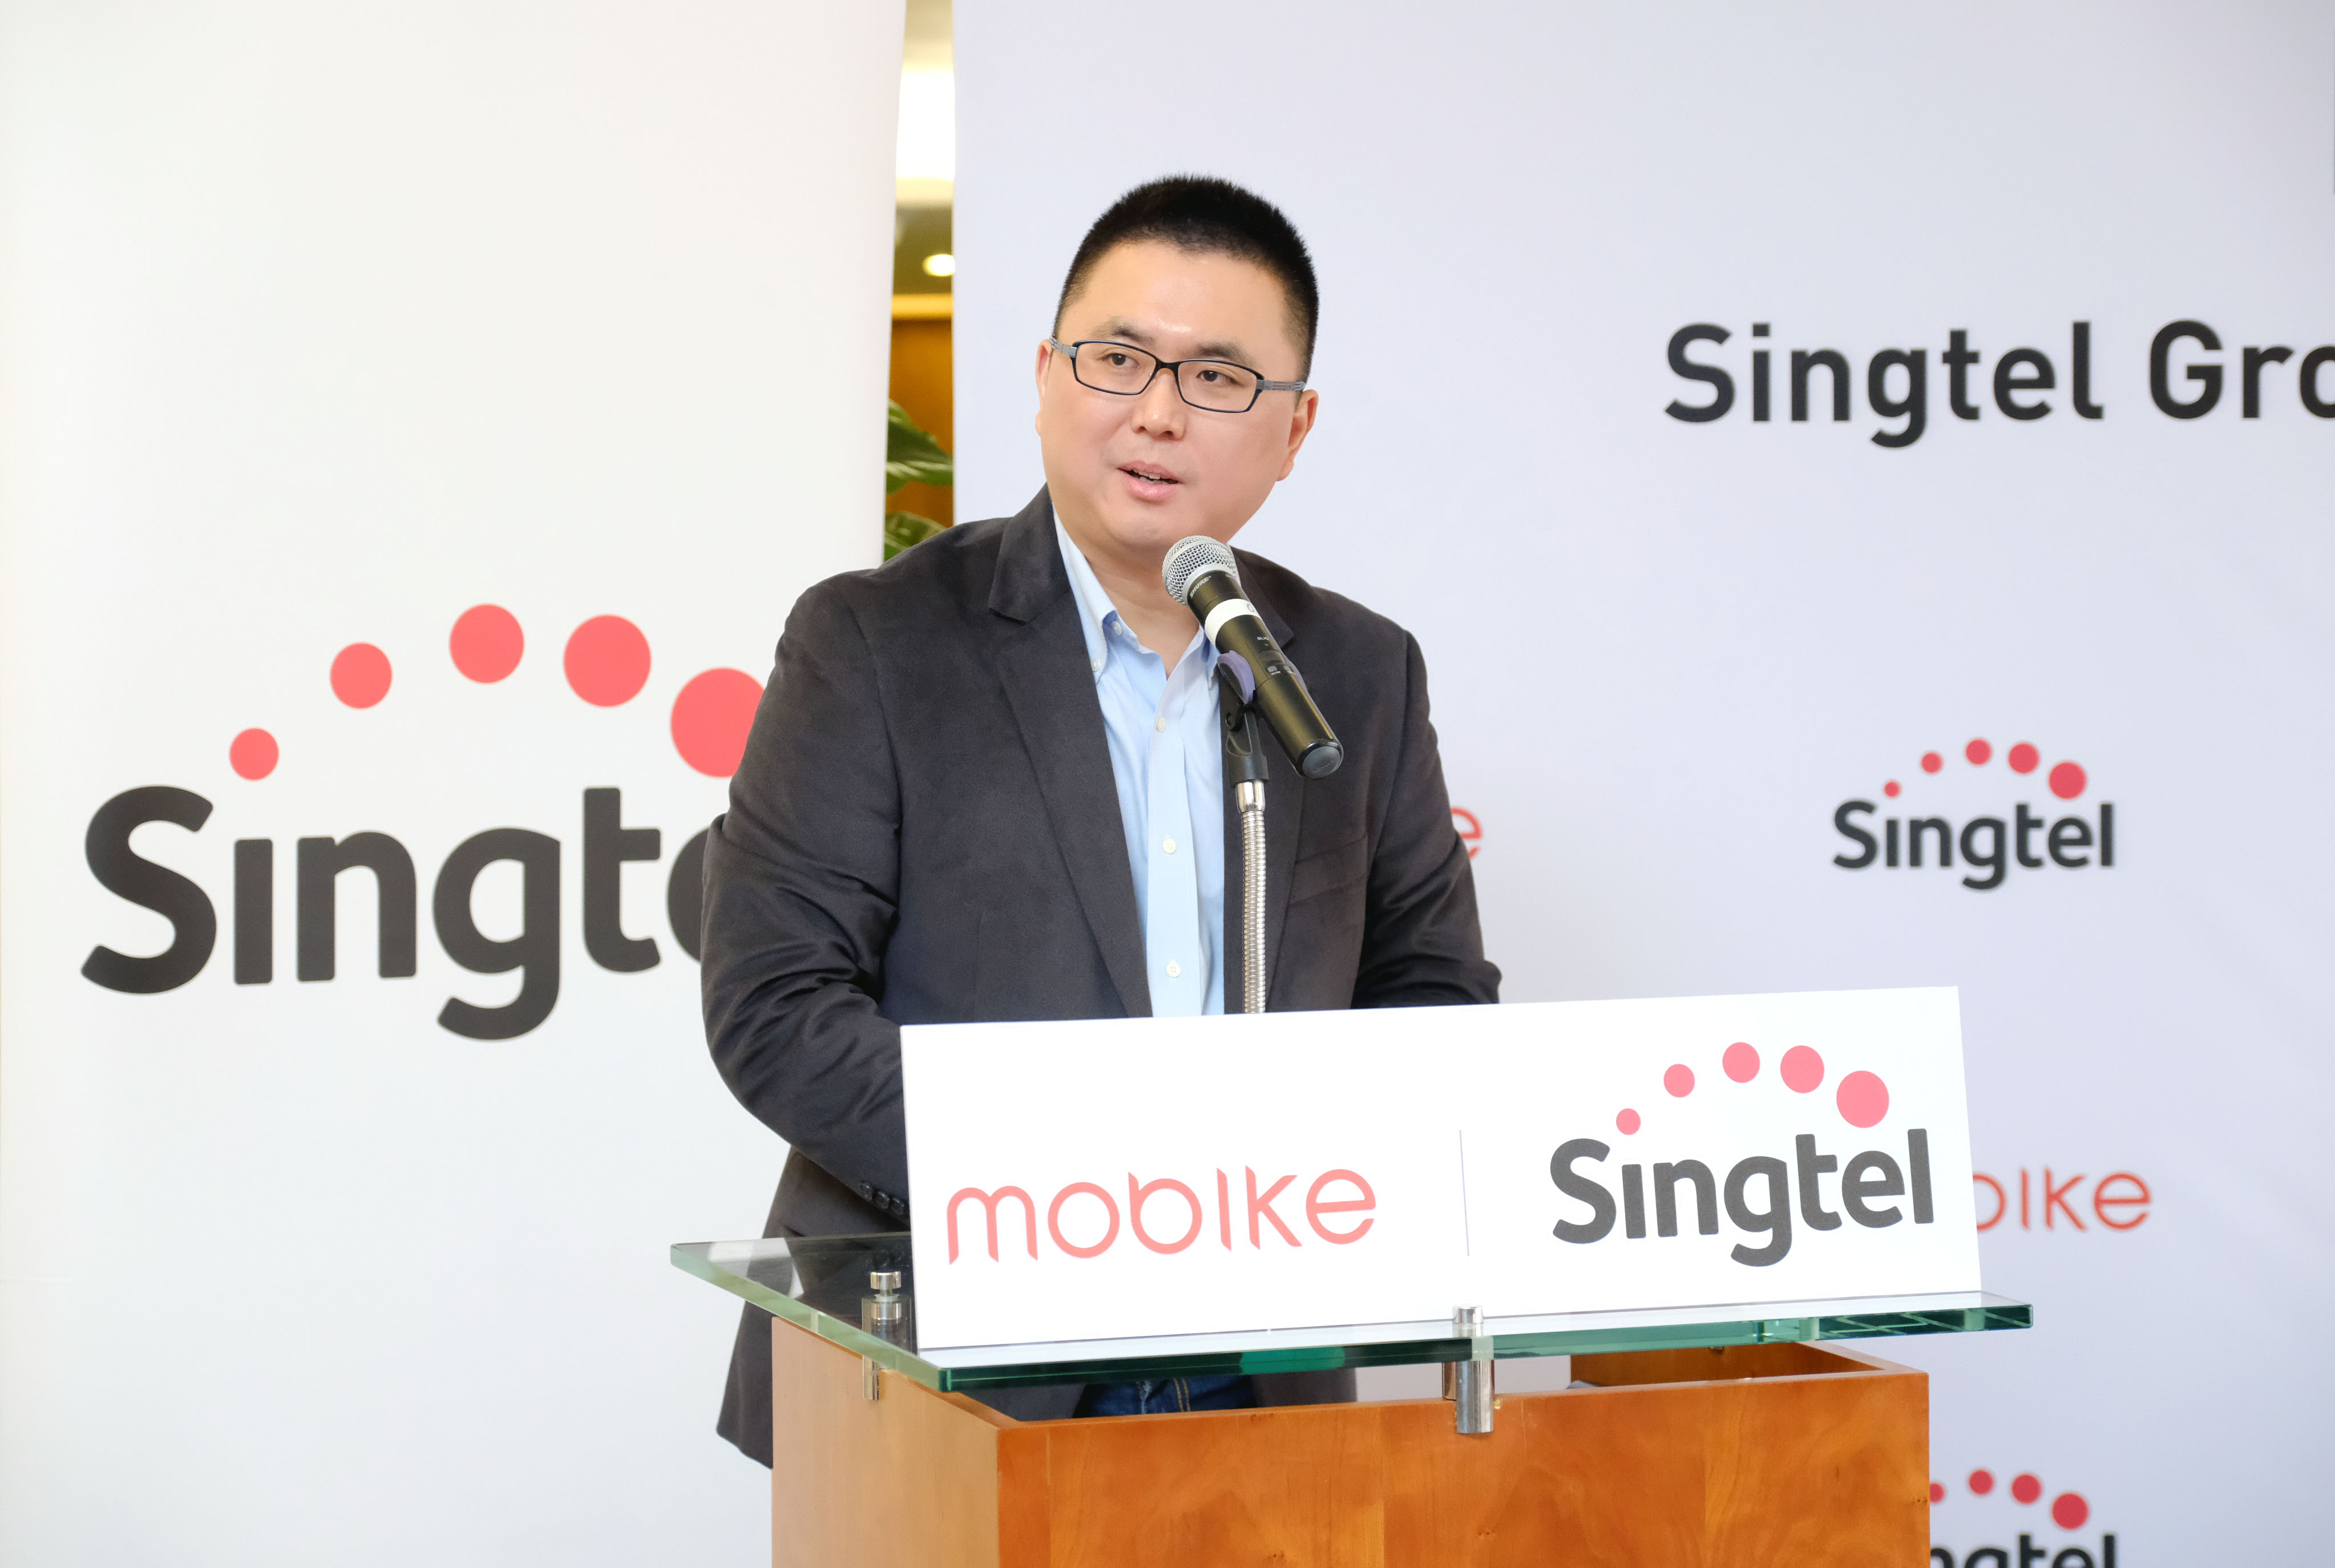 Joe Xia, Co-Founder and CTO of Mobike, said Singtel Group and Mobike plan to explore the use of data analytics to improve the distribution of Mobike's fleet. Photo courtesy: Singtel Group